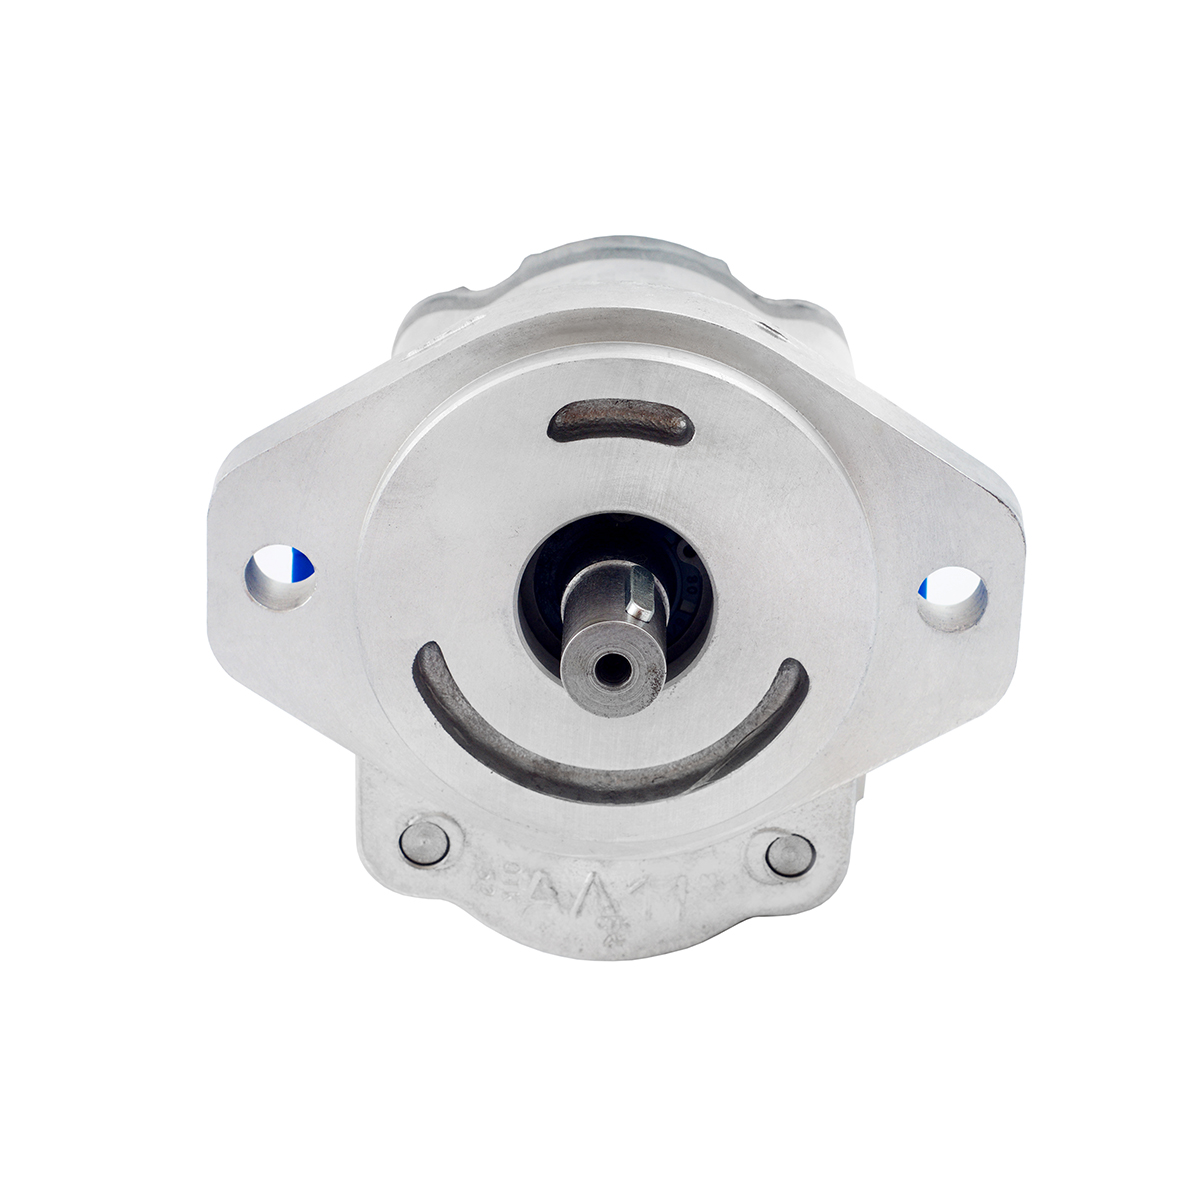 0.85 CID hydraulic gear pump, 5/8 keyed shaft counter-clockwise gear pump | Magister Hydraulics